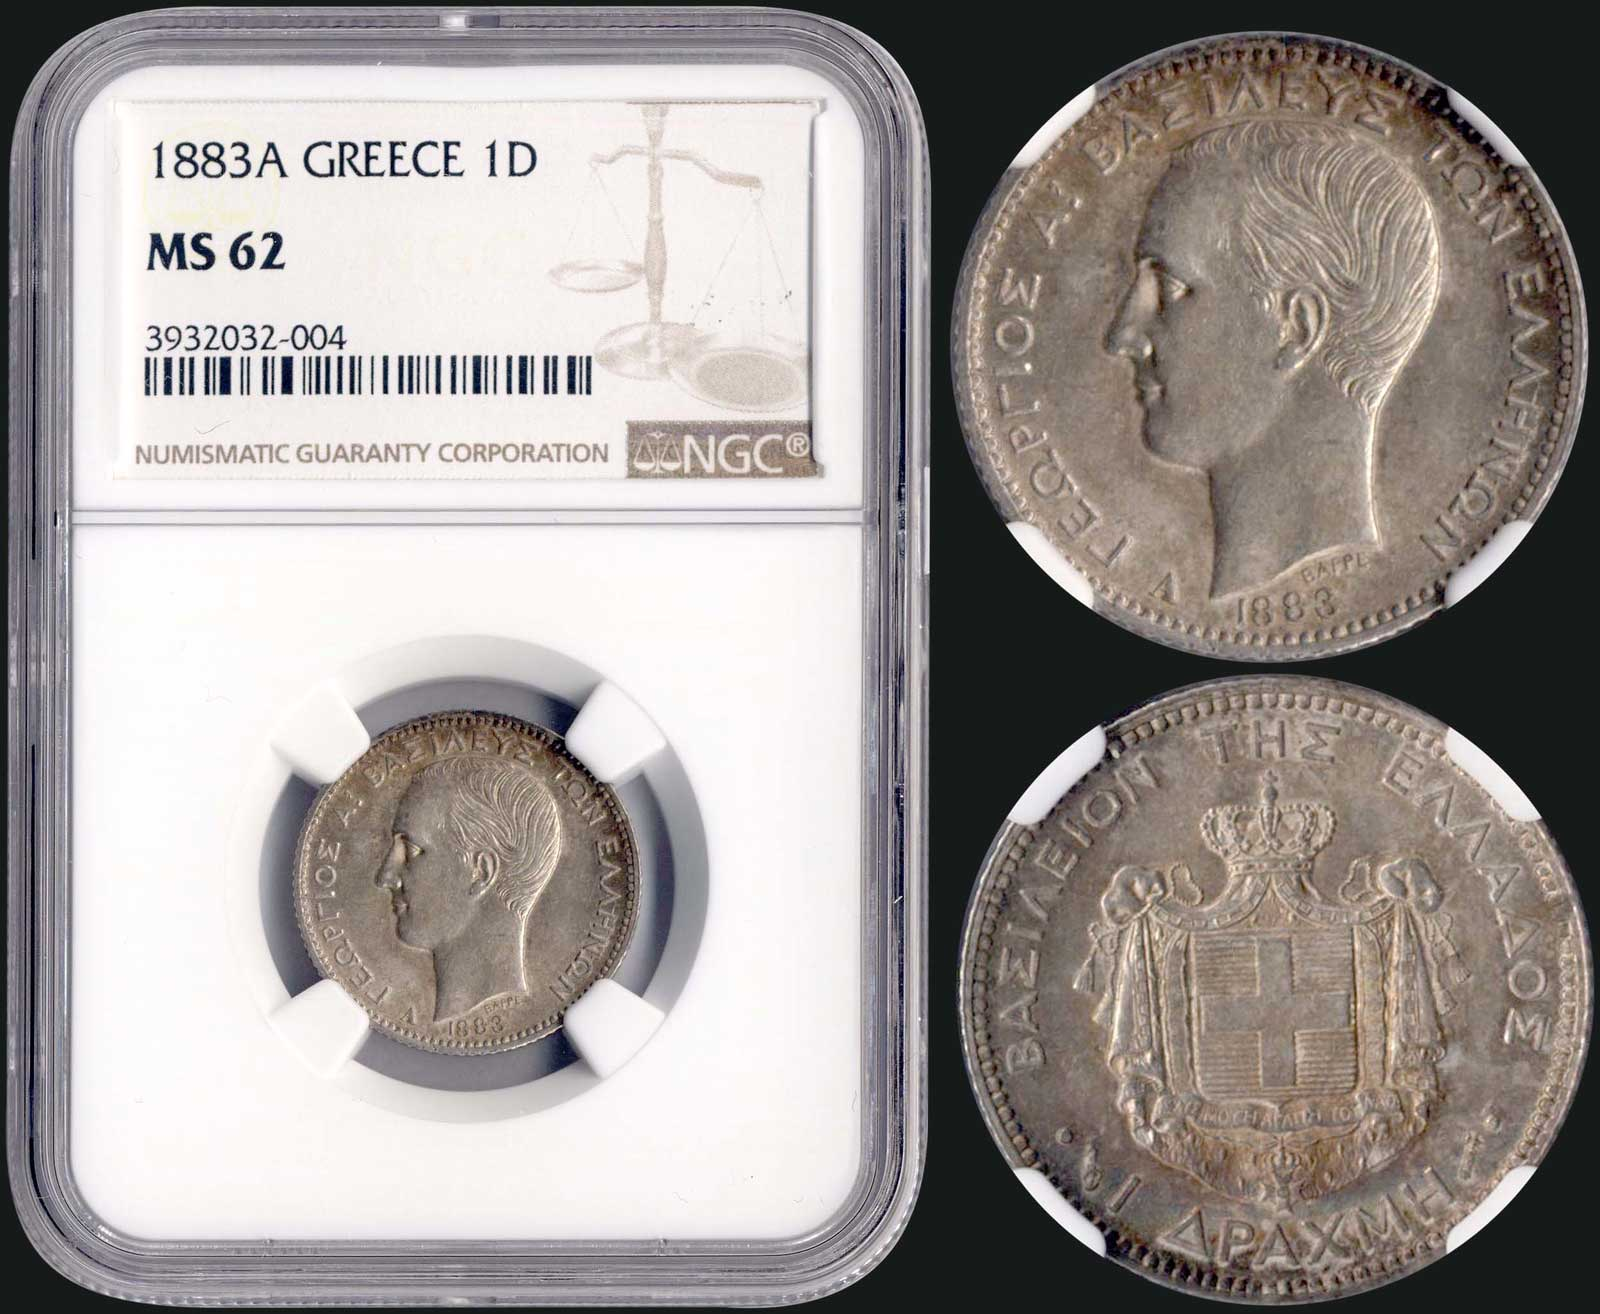 Lot 9095 - GREECE-  COINS & TOKENS king george i -  A. Karamitsos Public & LIVE Bid Auction 610 Coins, Medals & Banknotes